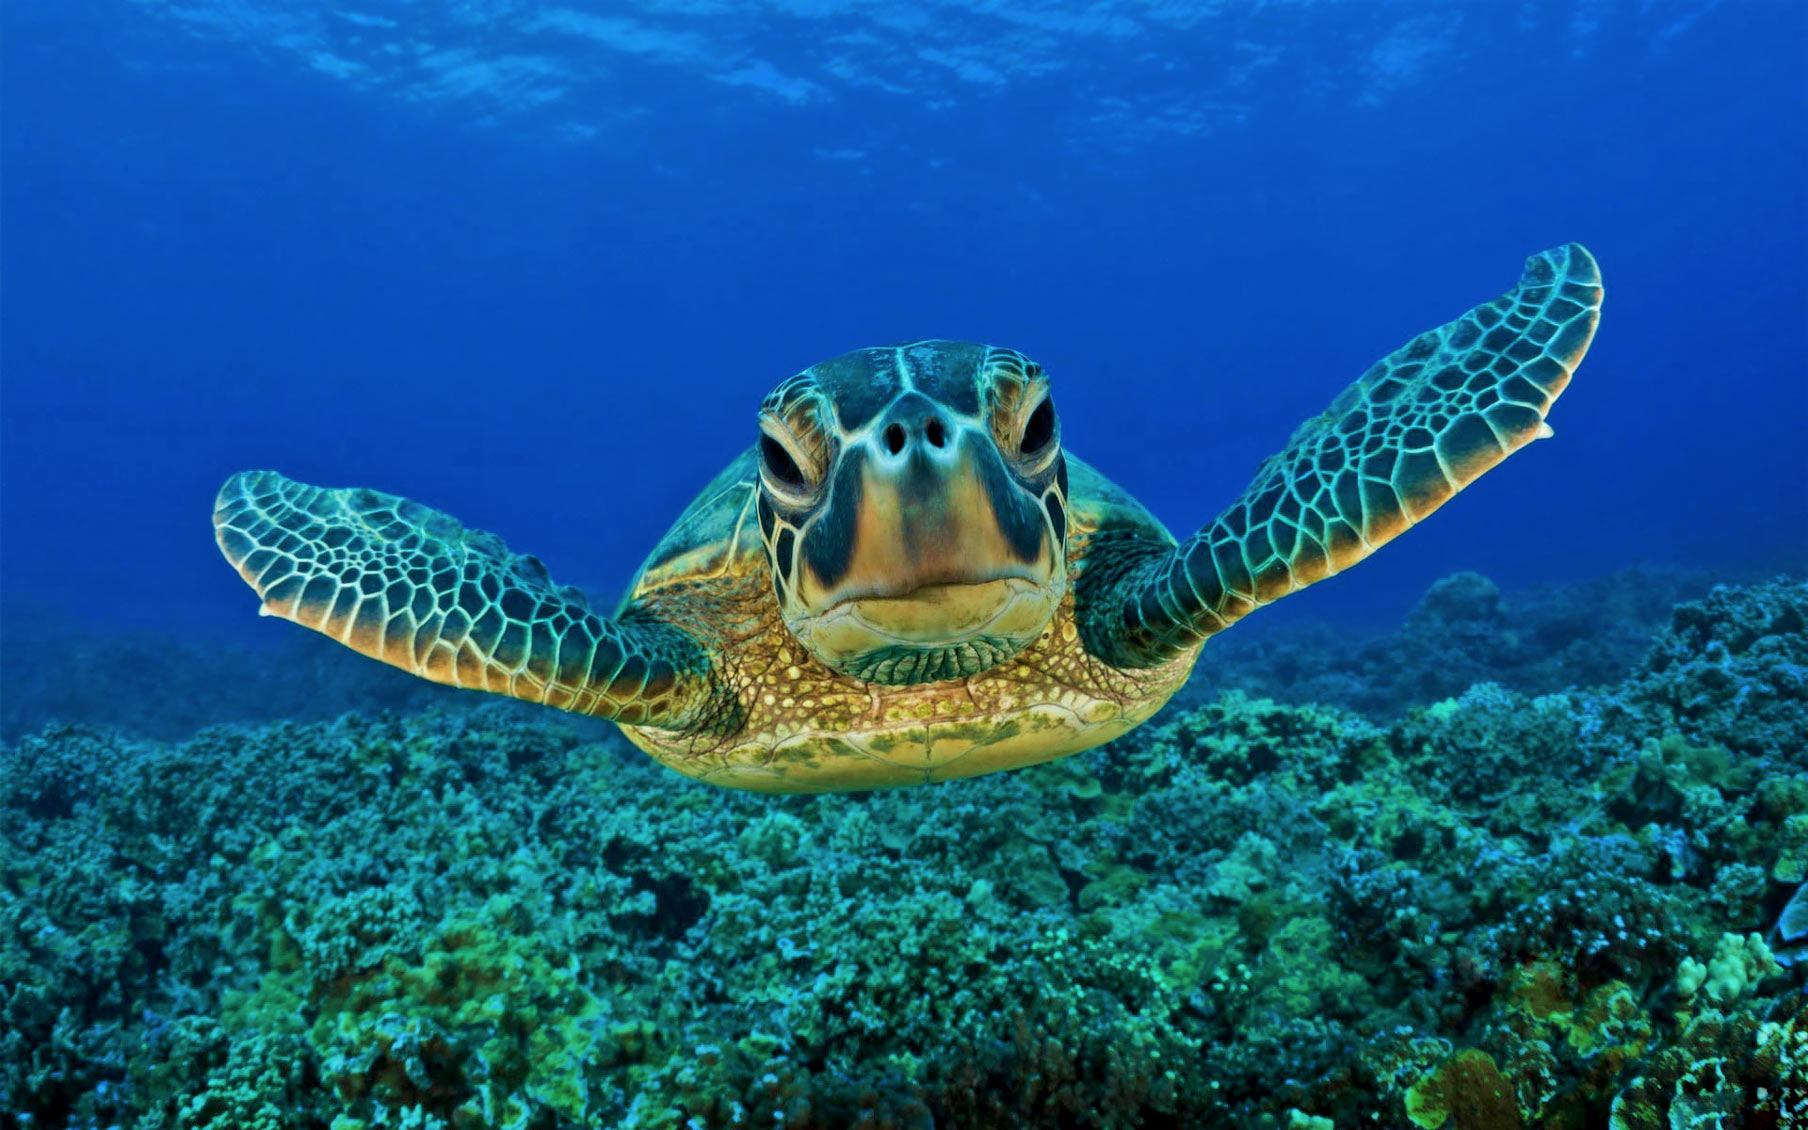 Sabah aims for 2.5 million hectares of protected waters, Turtle.